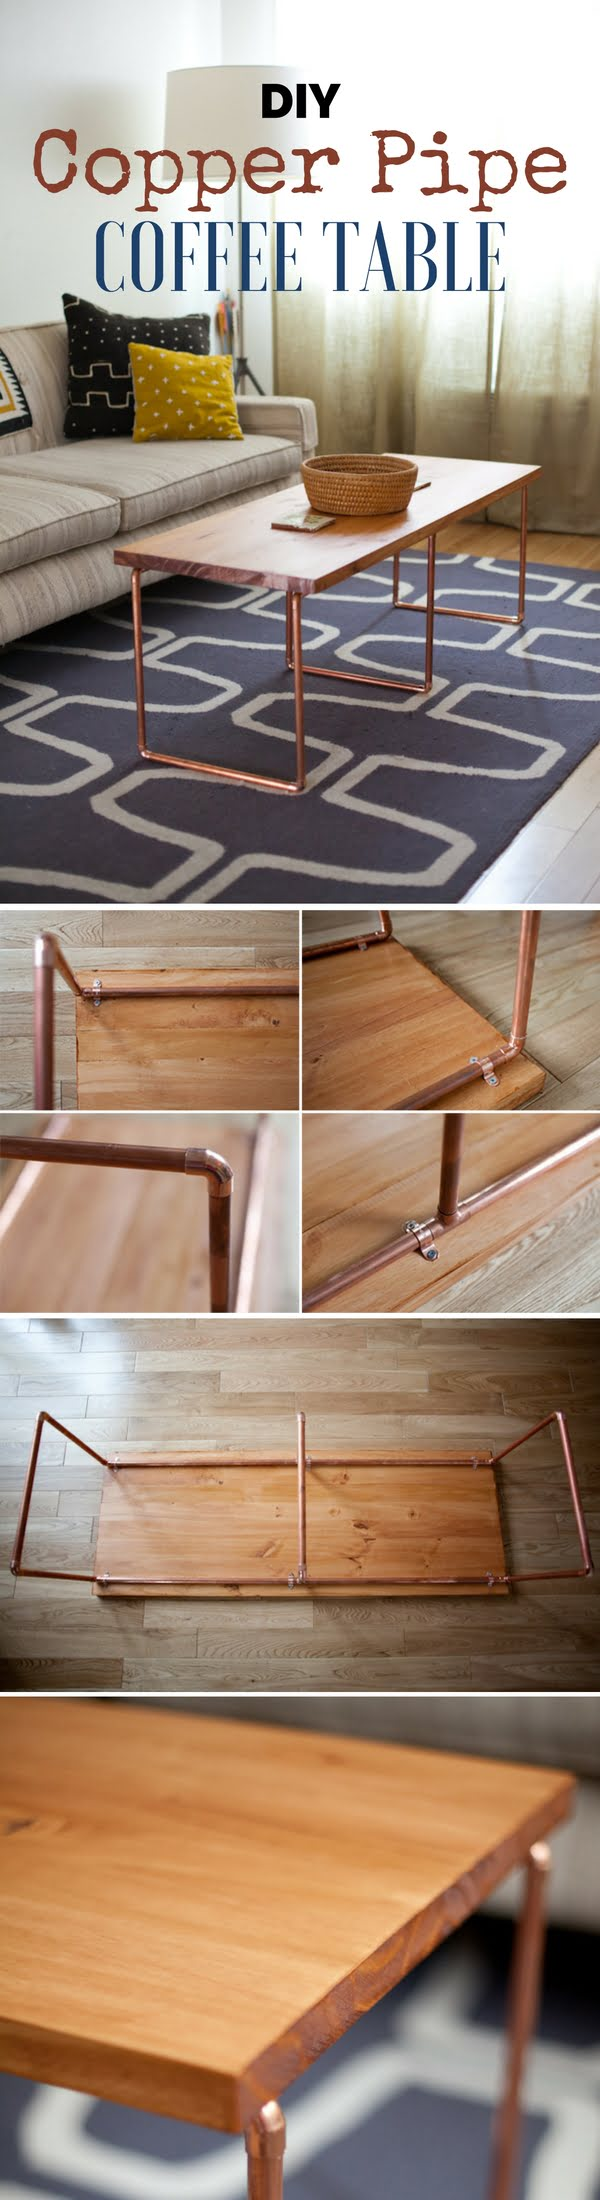 diy hundreds follow lots pictures doing floors afternoon install step tutorial one save with beautiful in flooring easily laminate of easy to it pin by how